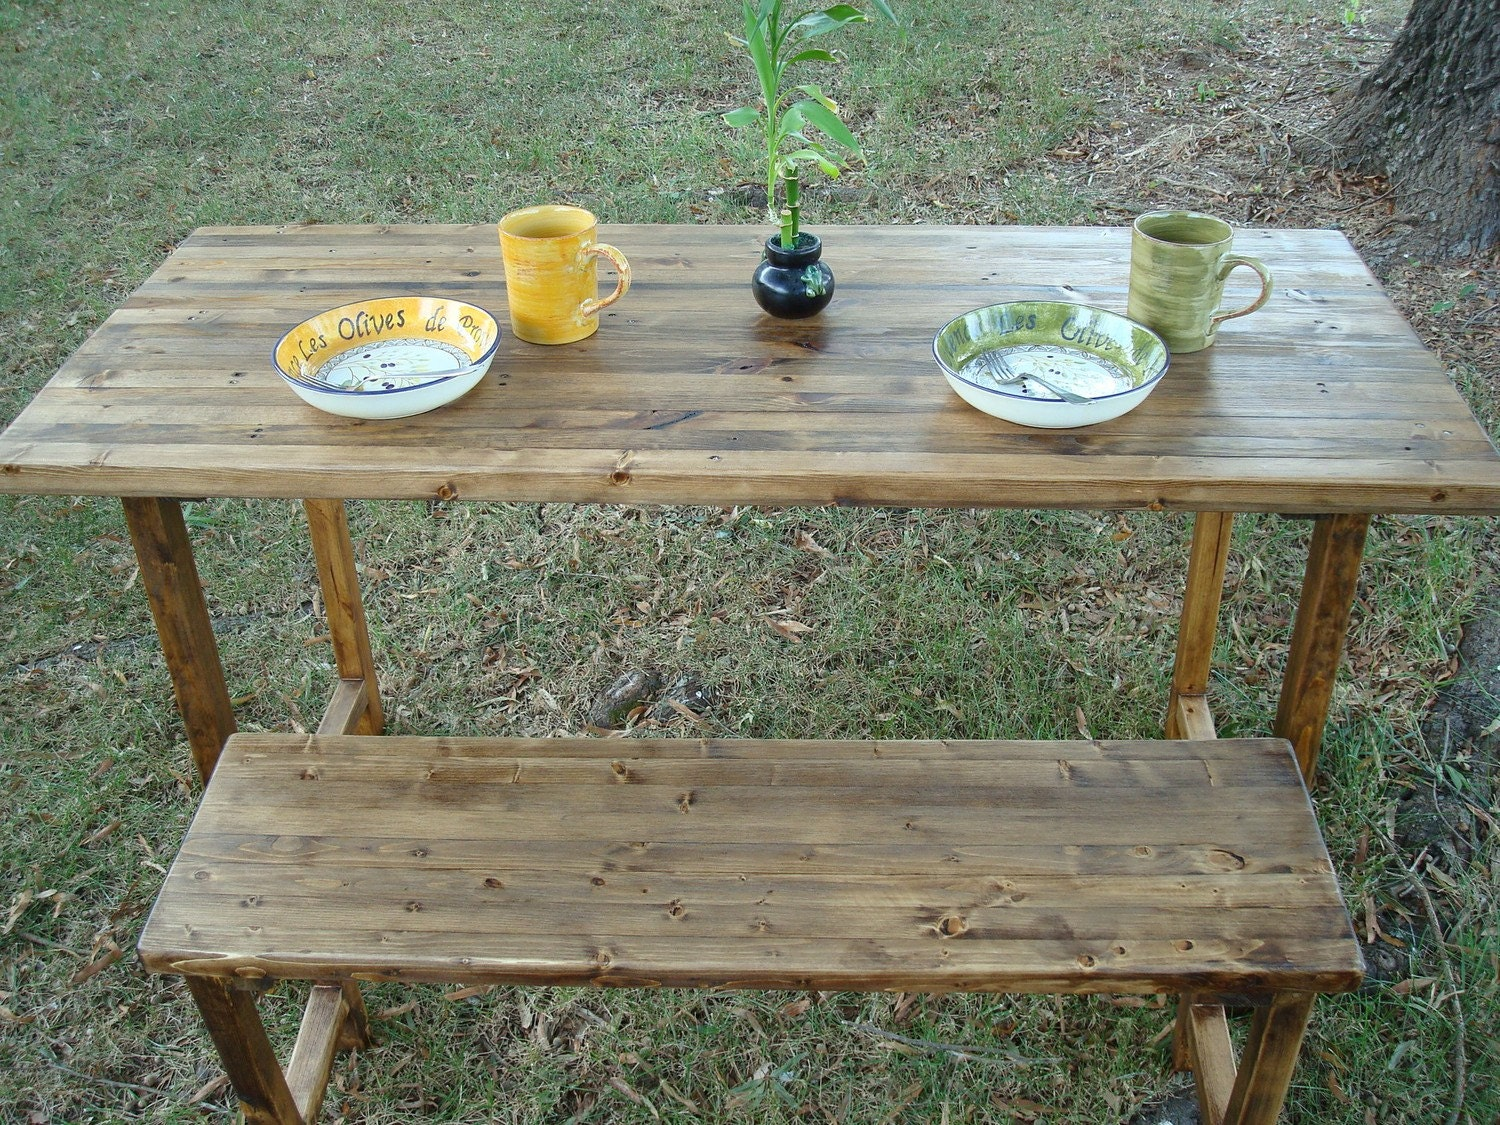 Reclaimed Wood Table and Bench